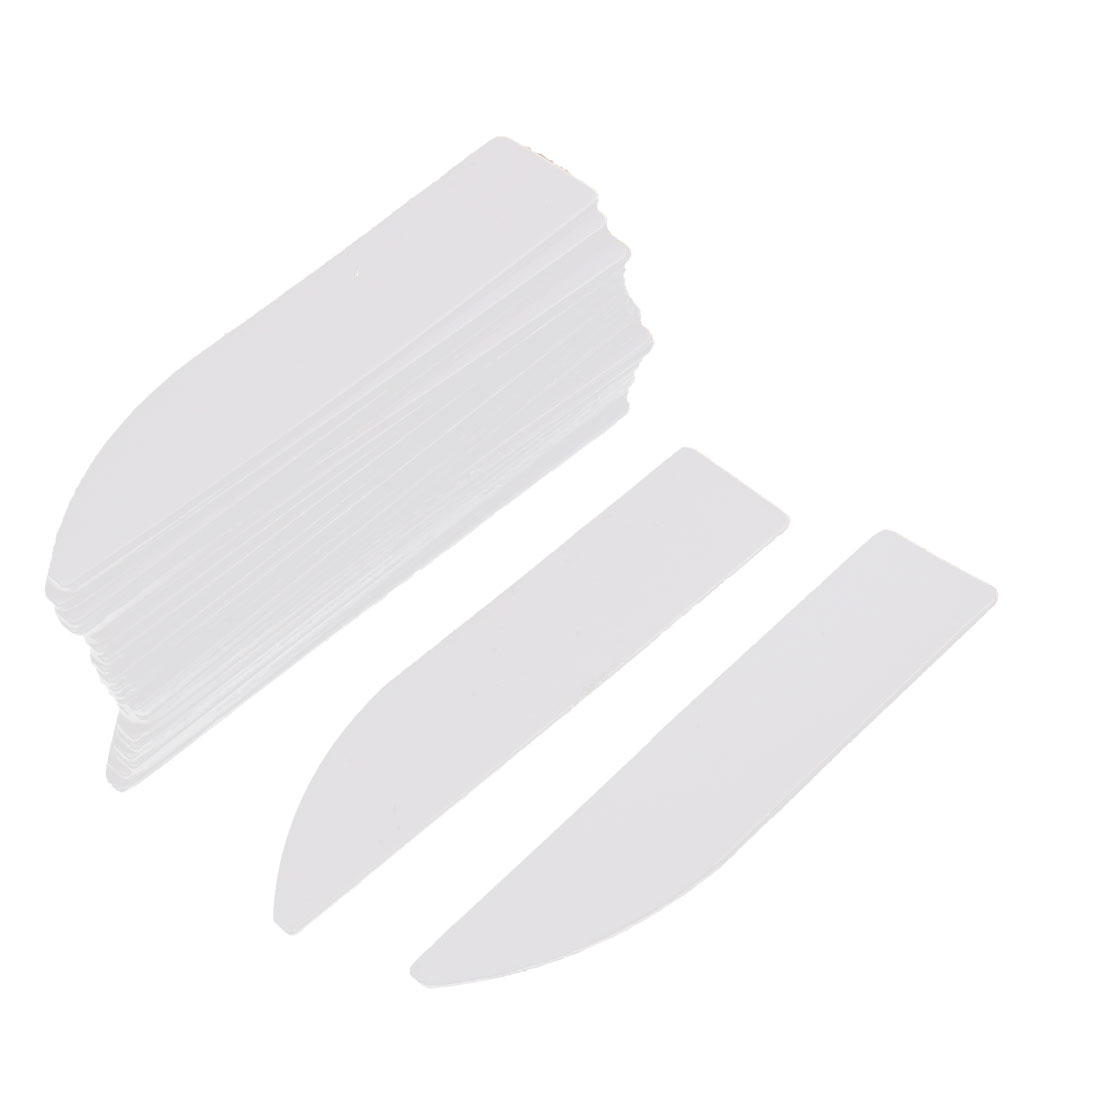 50mm x 11mm Plastic Nursery Garden Plant Seed Tag Label Pot Marker White 26Pcs